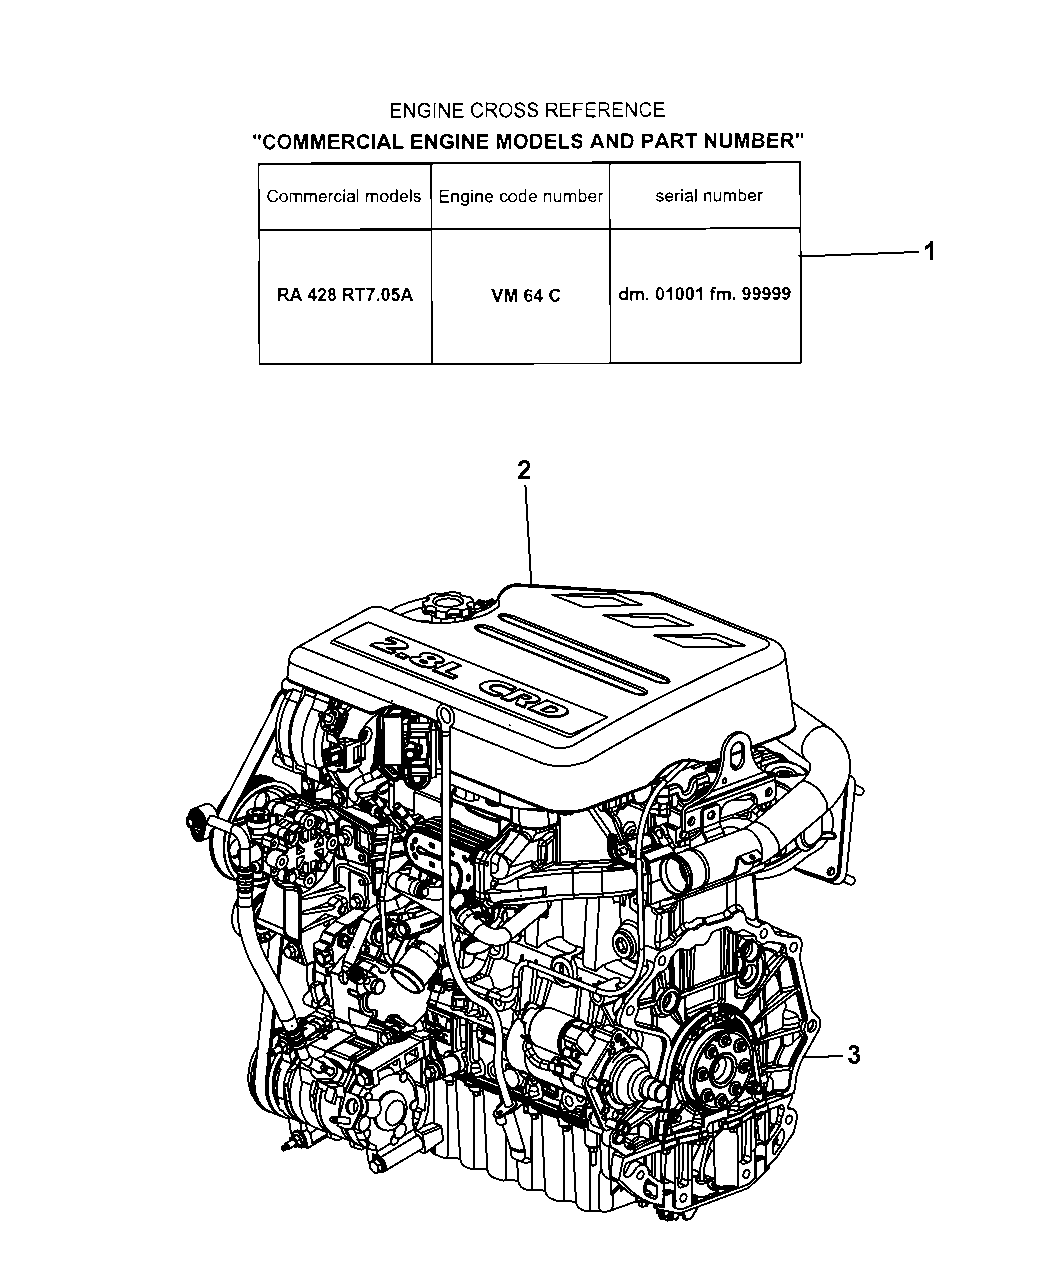 2012 chrysler town and country engine diagram wiring library 1996 ford 3.8 engine diagram 2012 chrysler town and country engine diagram